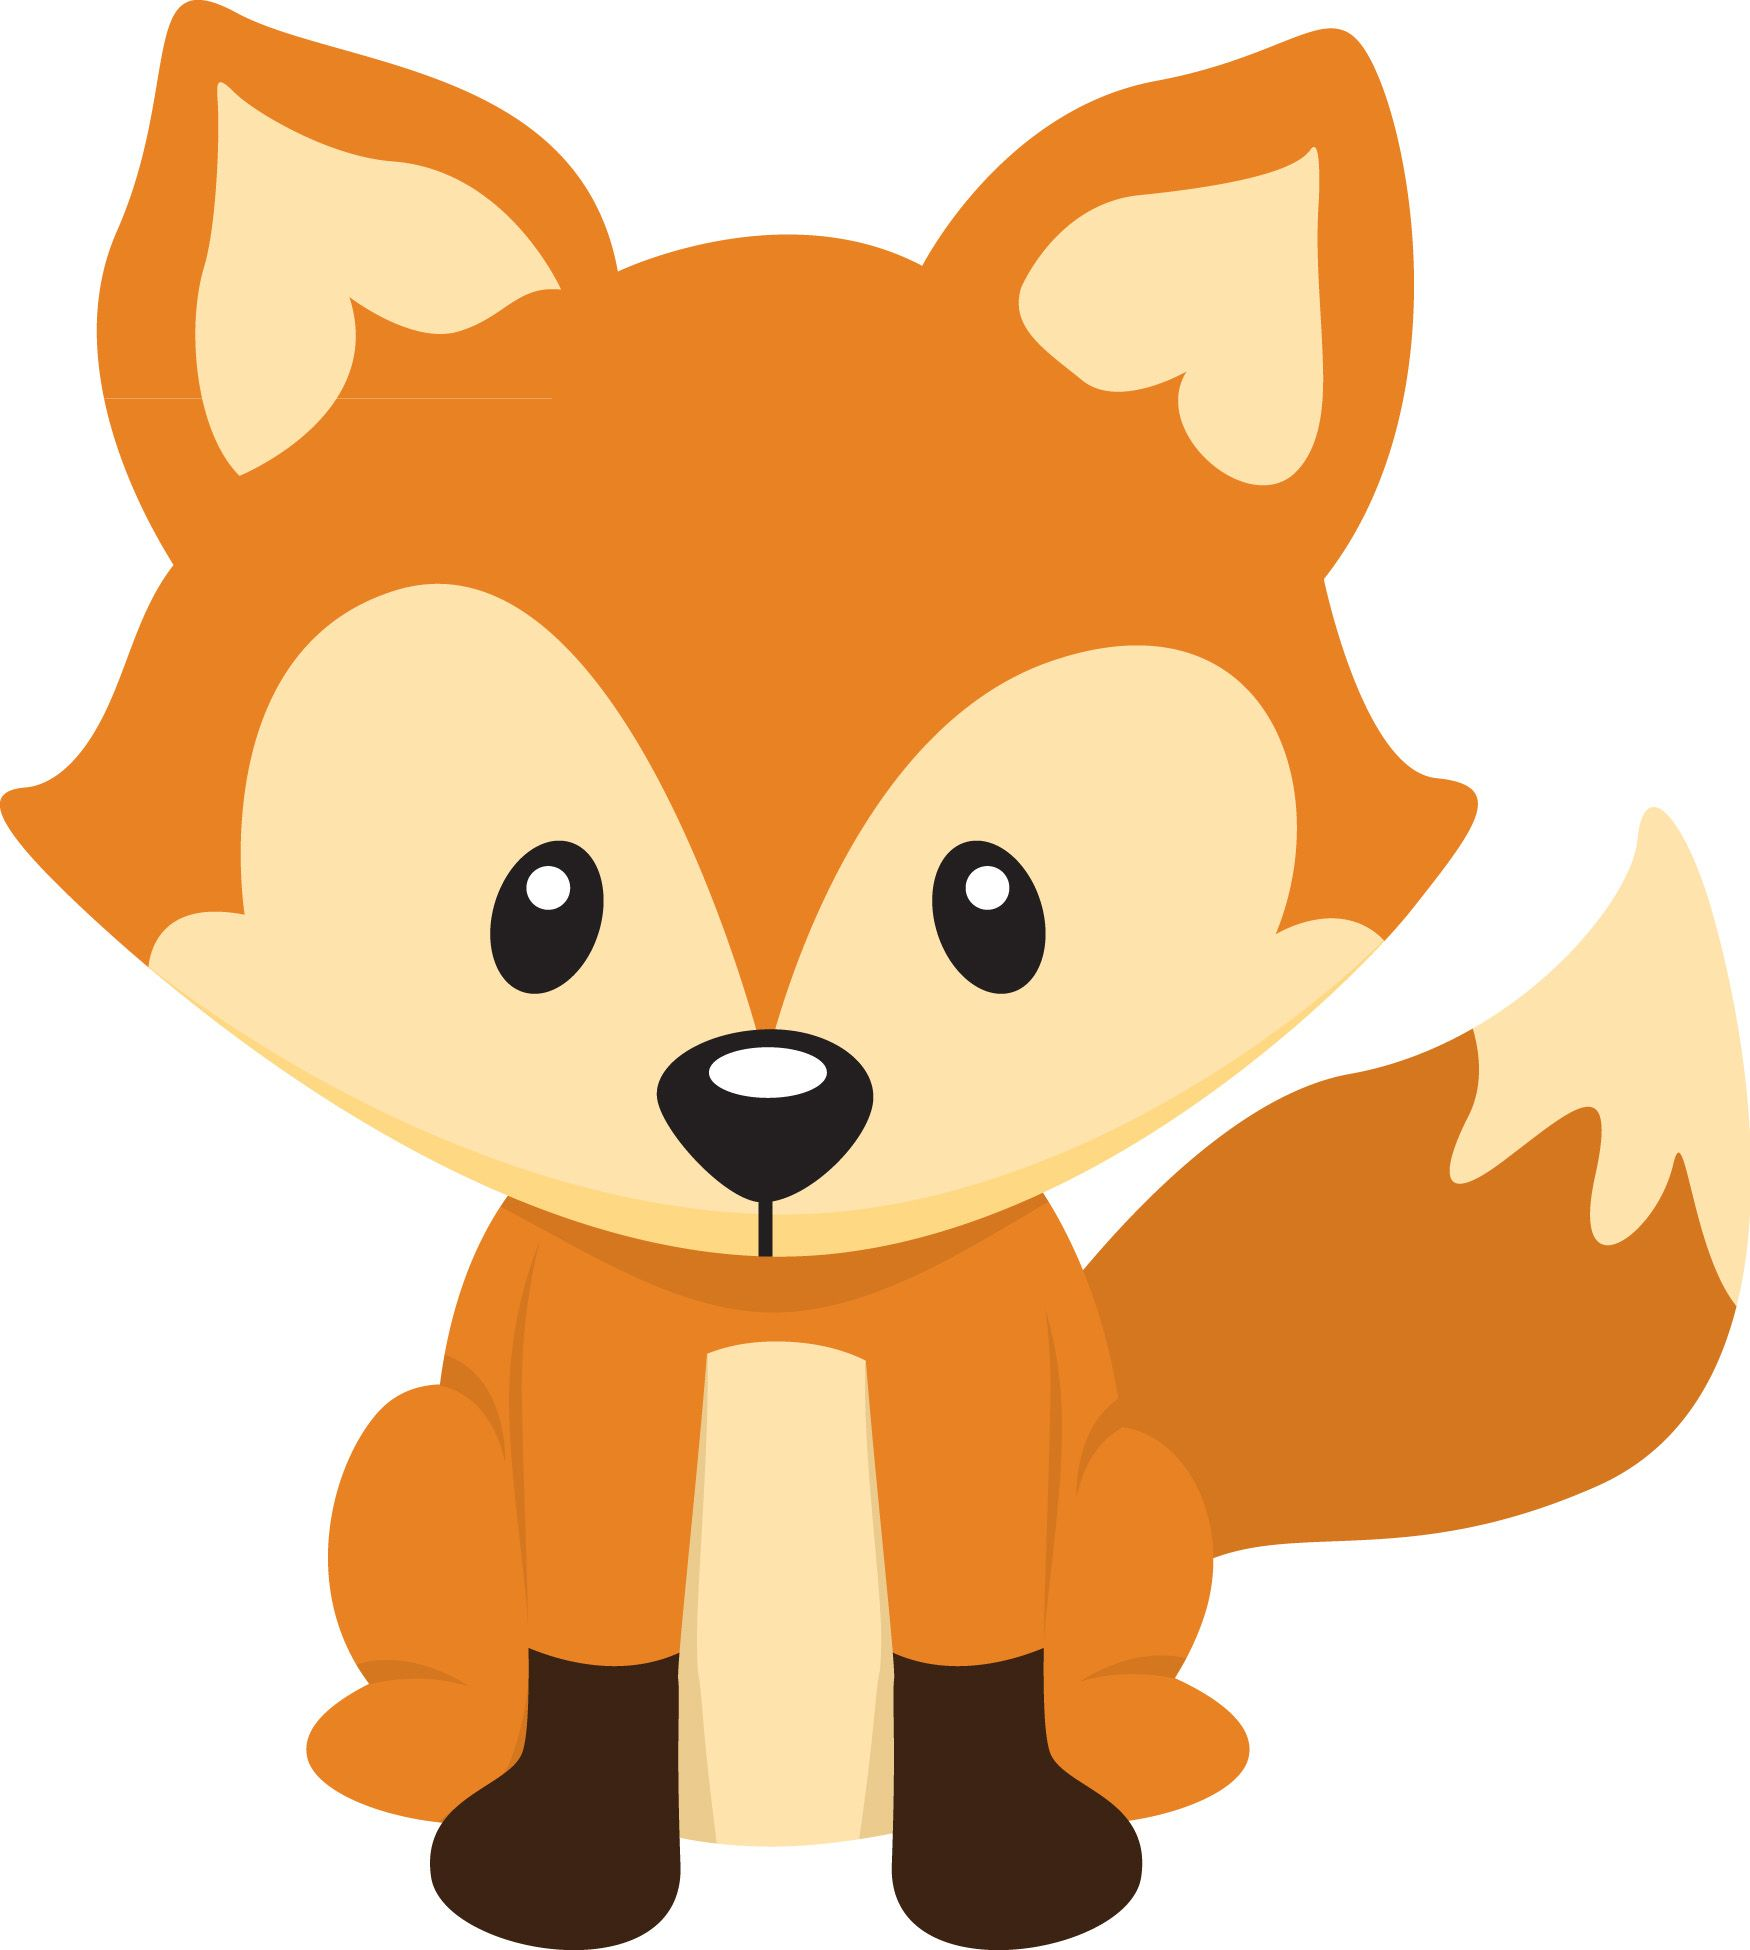 1750x1950 Fox Free Images At Clkercom Vector Clip Art Online Royalty Clipart